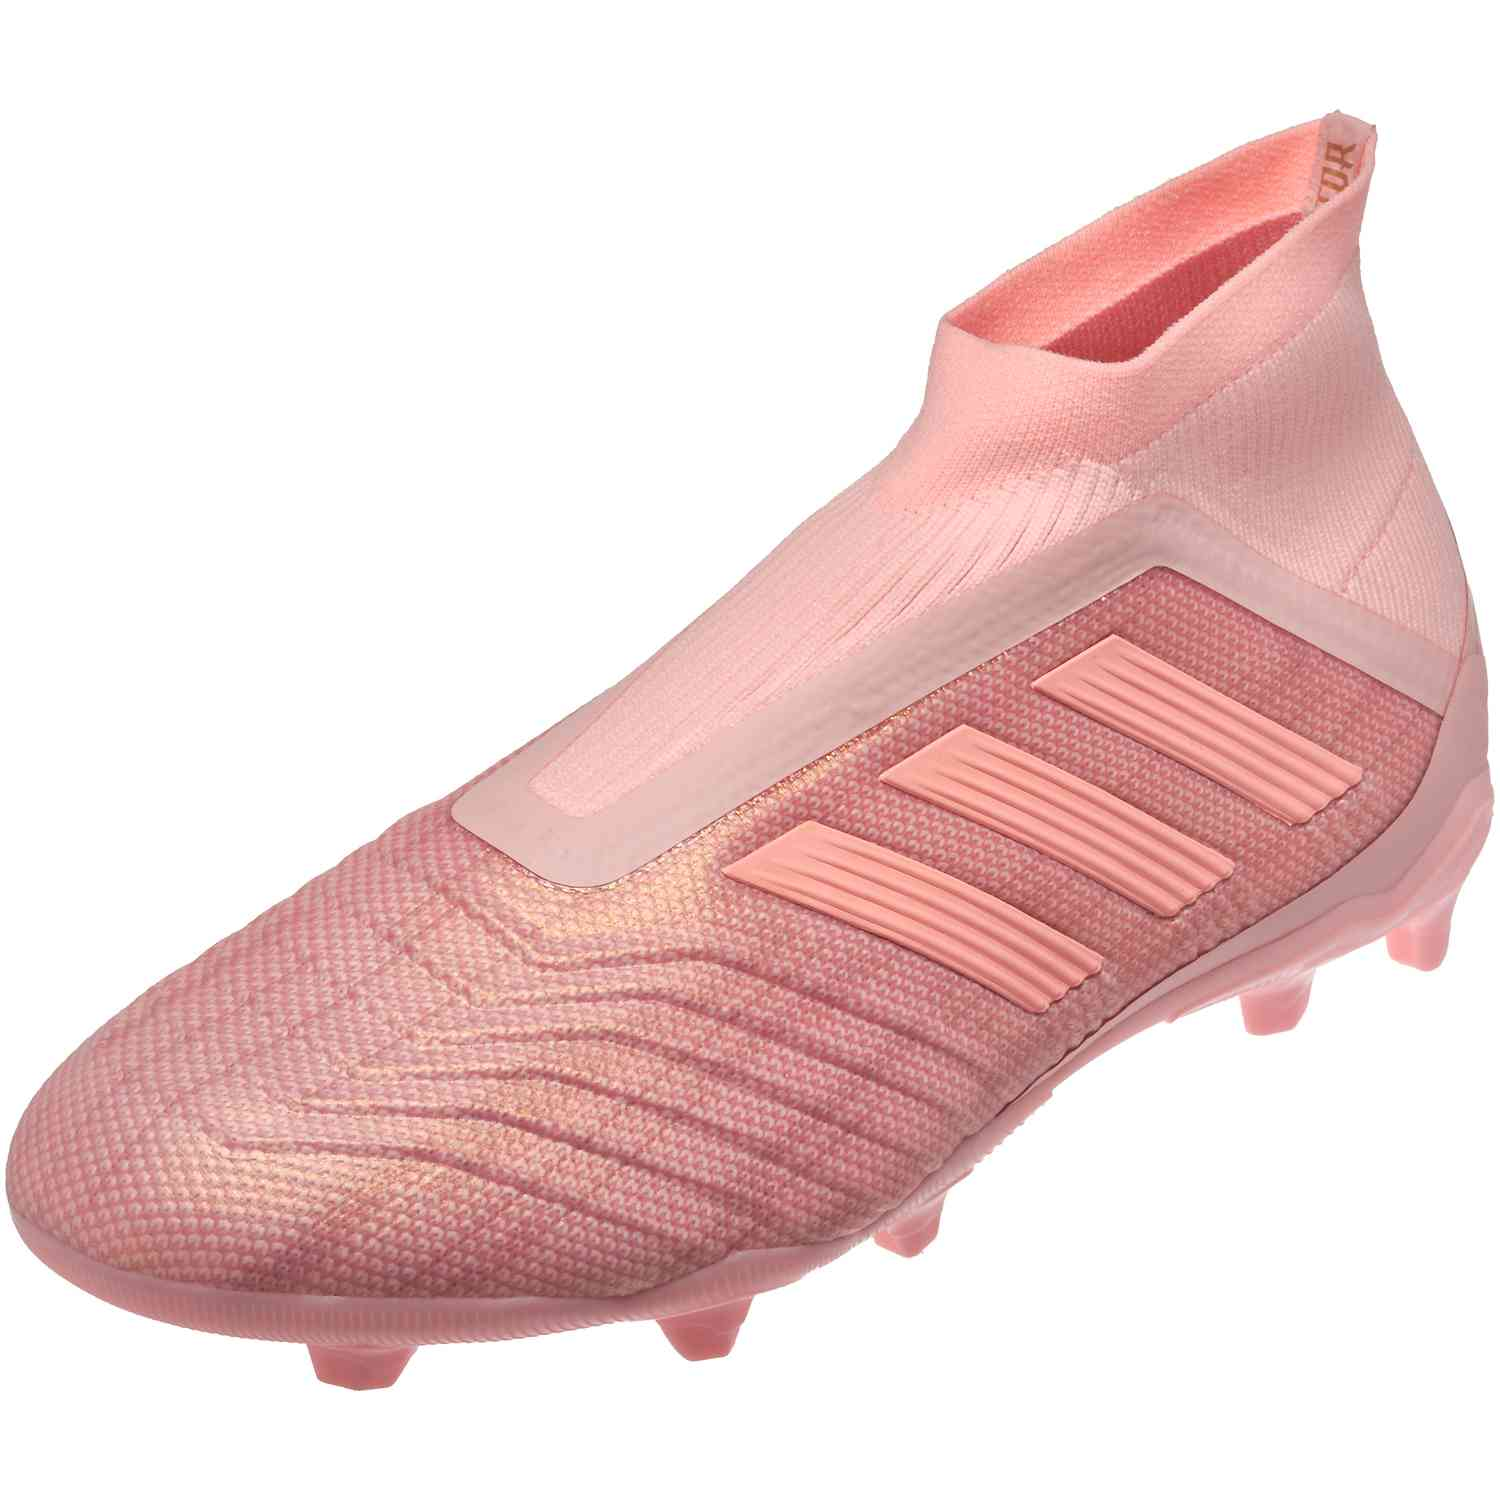 2d9db5fe5c43 adidas Predator 18+ FG - Youth - Clear Orange Trace Pink - SoccerPro